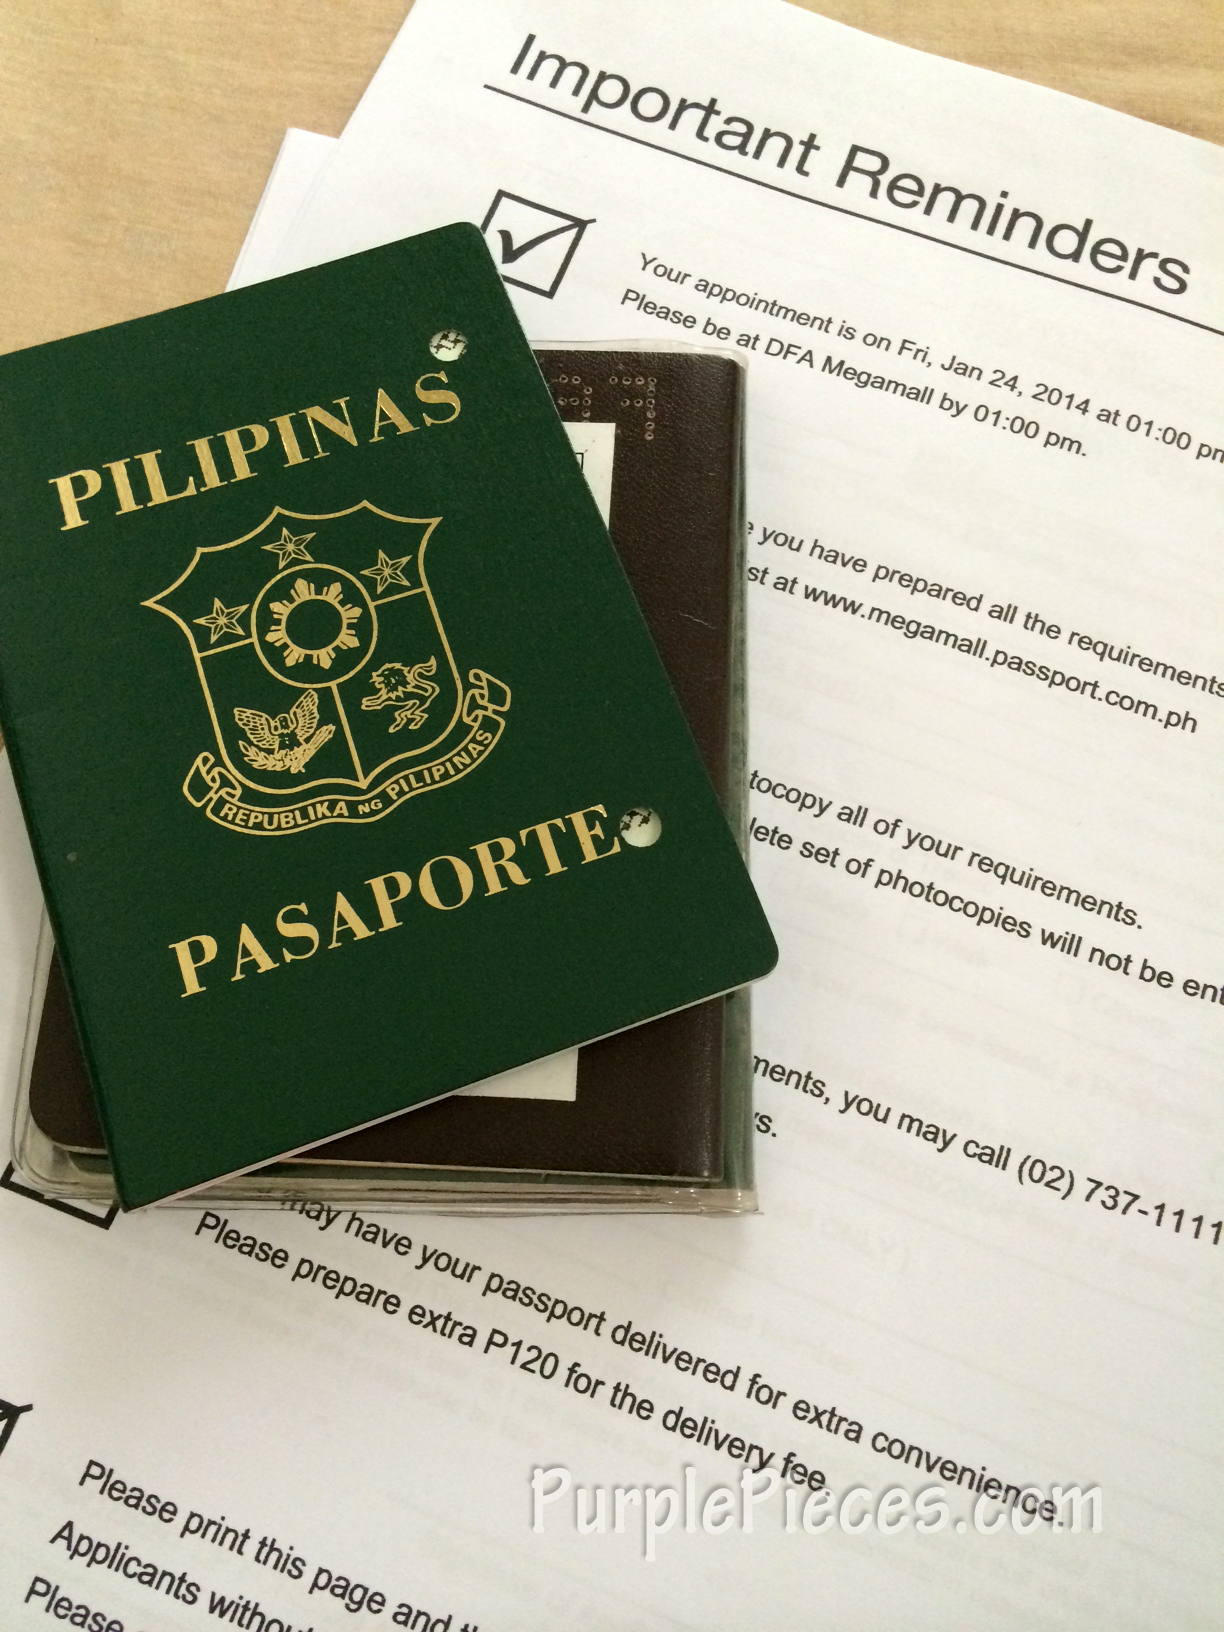 Easy Breezy Passport Renewal At Sm Megamall